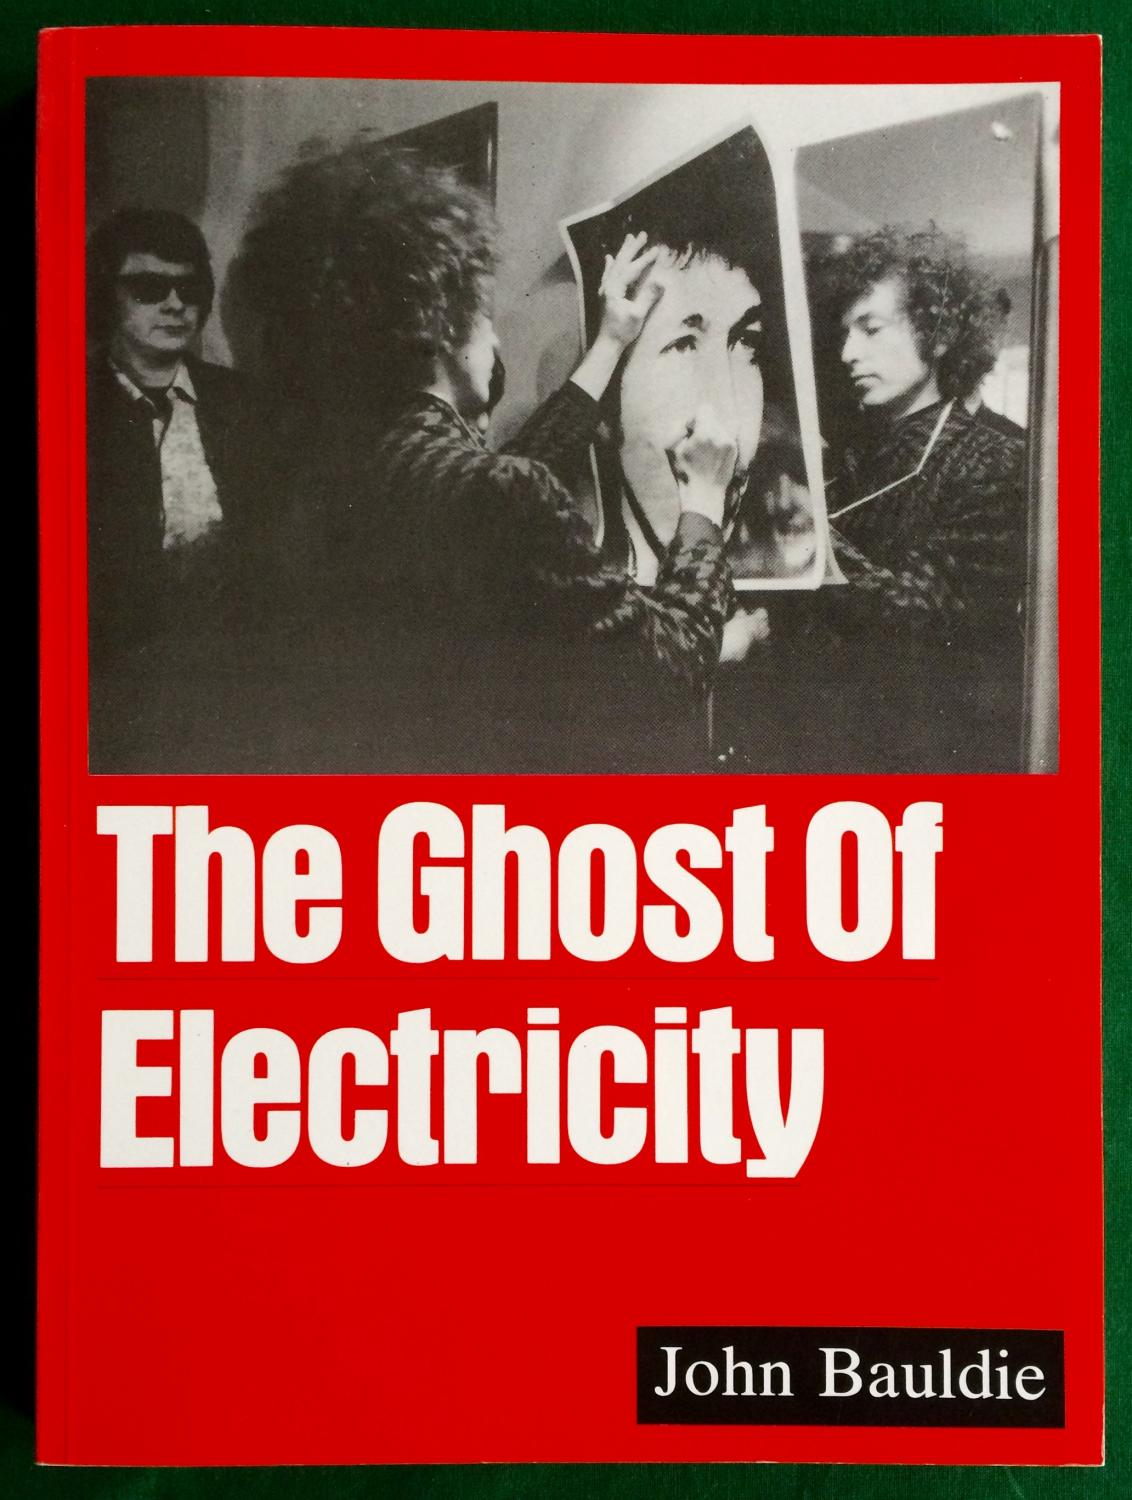 The Ghost of Electricity